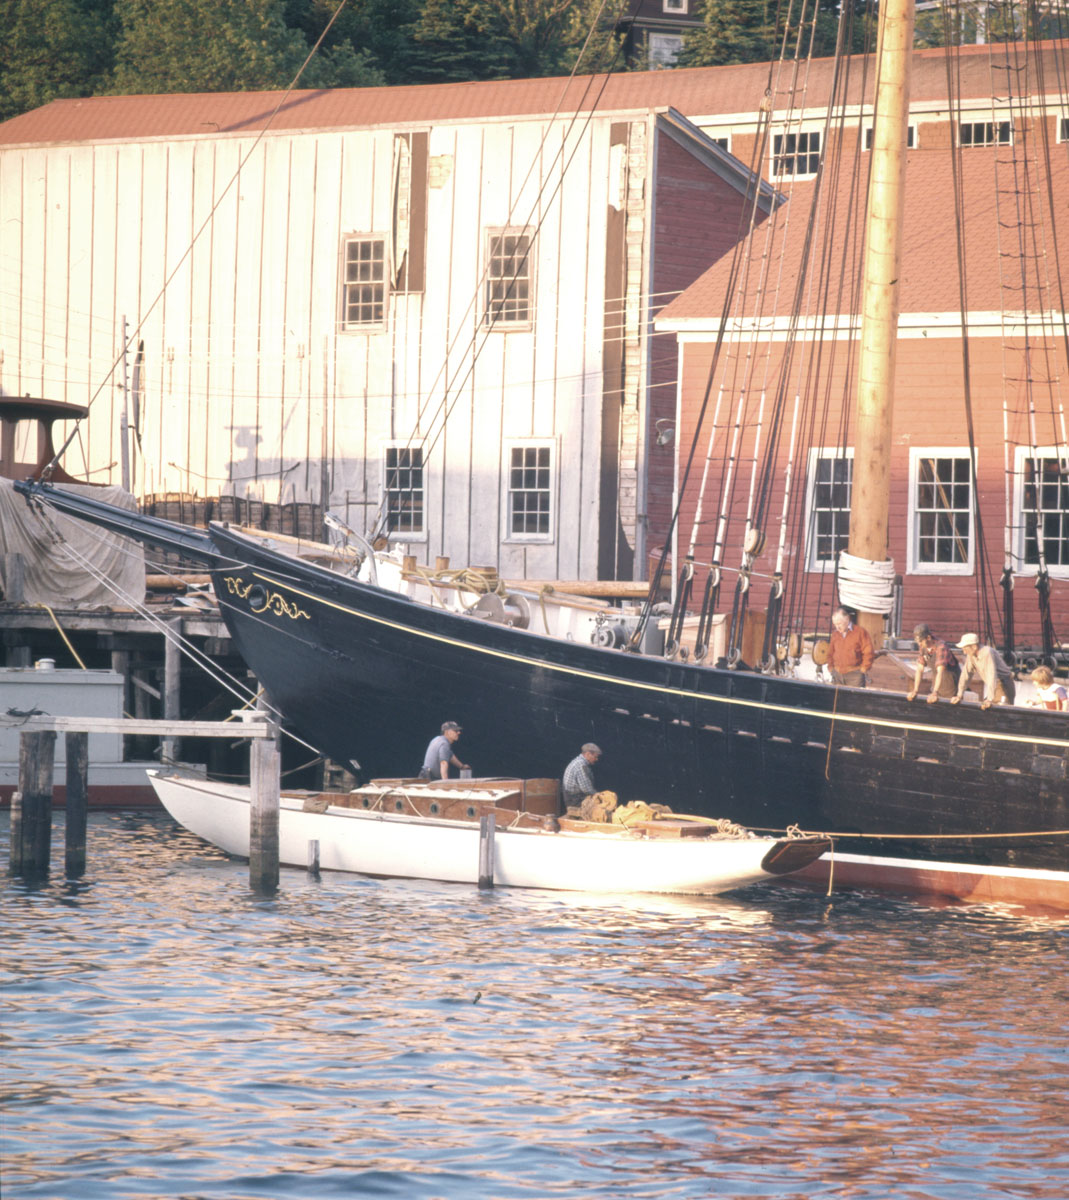 <i>Bluenose II</i> being refitted at Smith & Rhuland, Lunenburg, NS